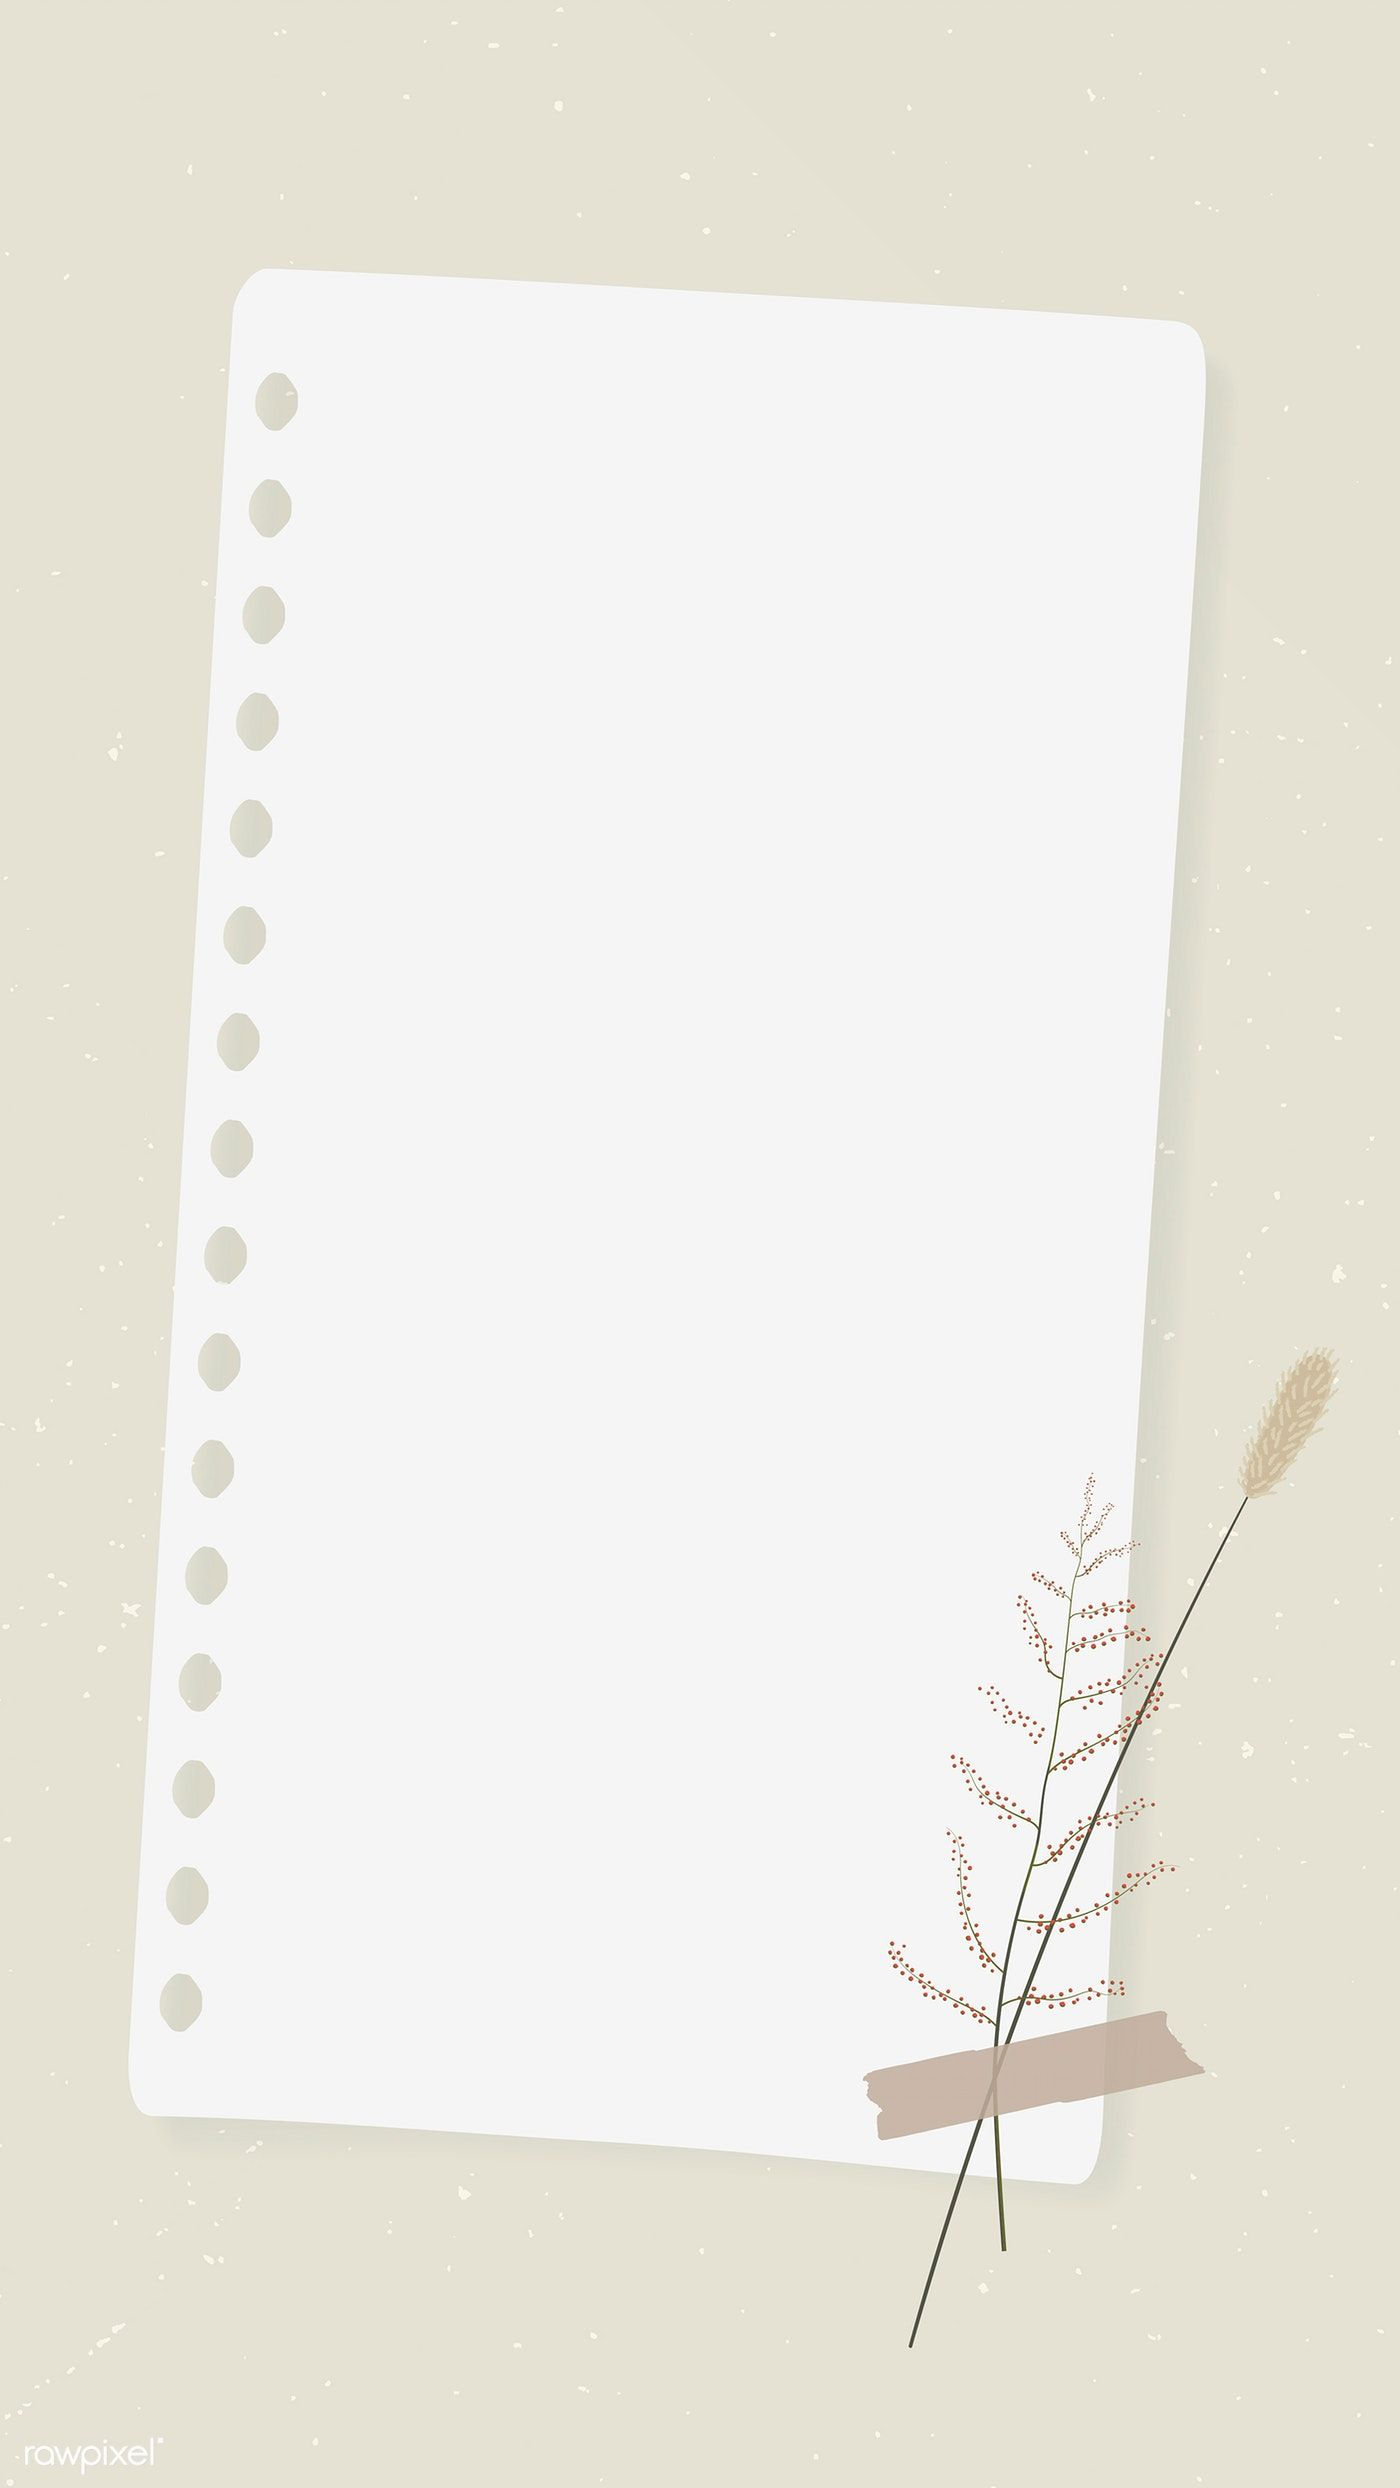 Download Premium Vector Of Vintage Design On Old Brown Paper Mobile Phone Photo Collage Template Aesthetic Iphone Wallpaper Powerpoint Background Design